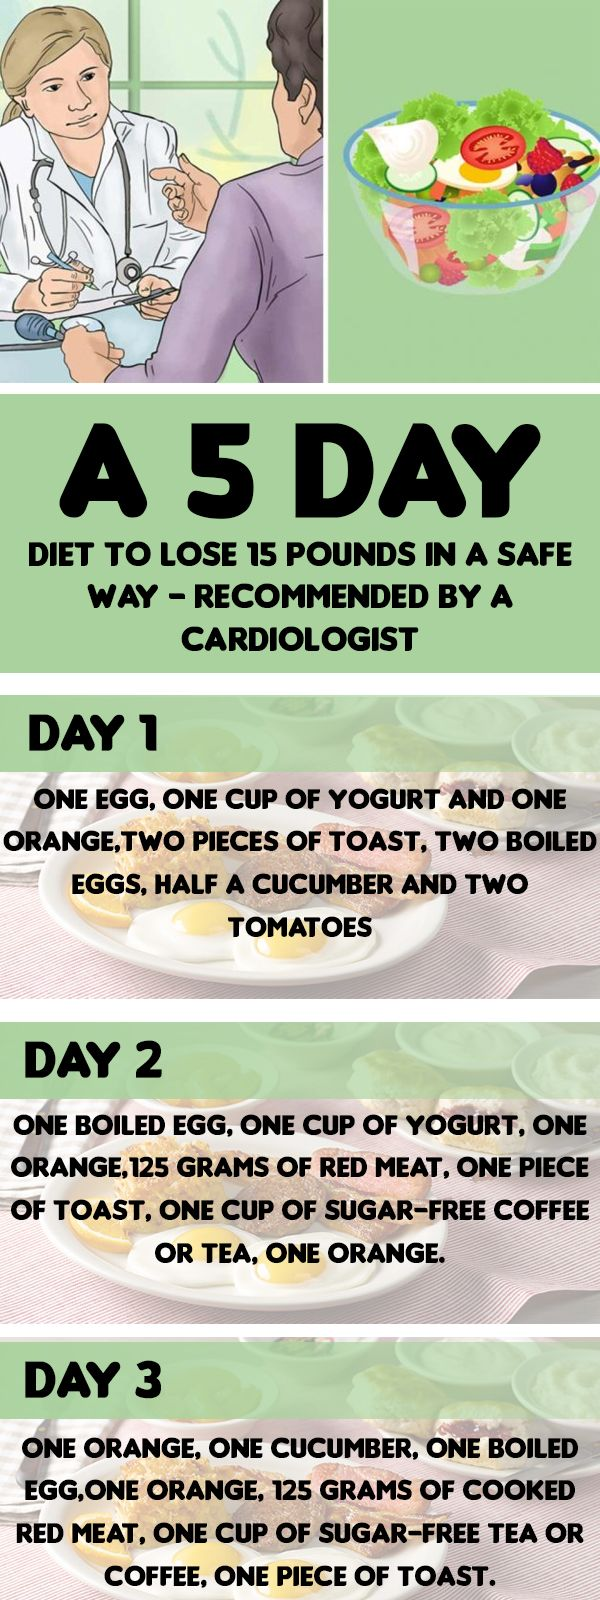 A 10-Day Diet To Lose 110 Pounds In A Safe Way – Recommended By A